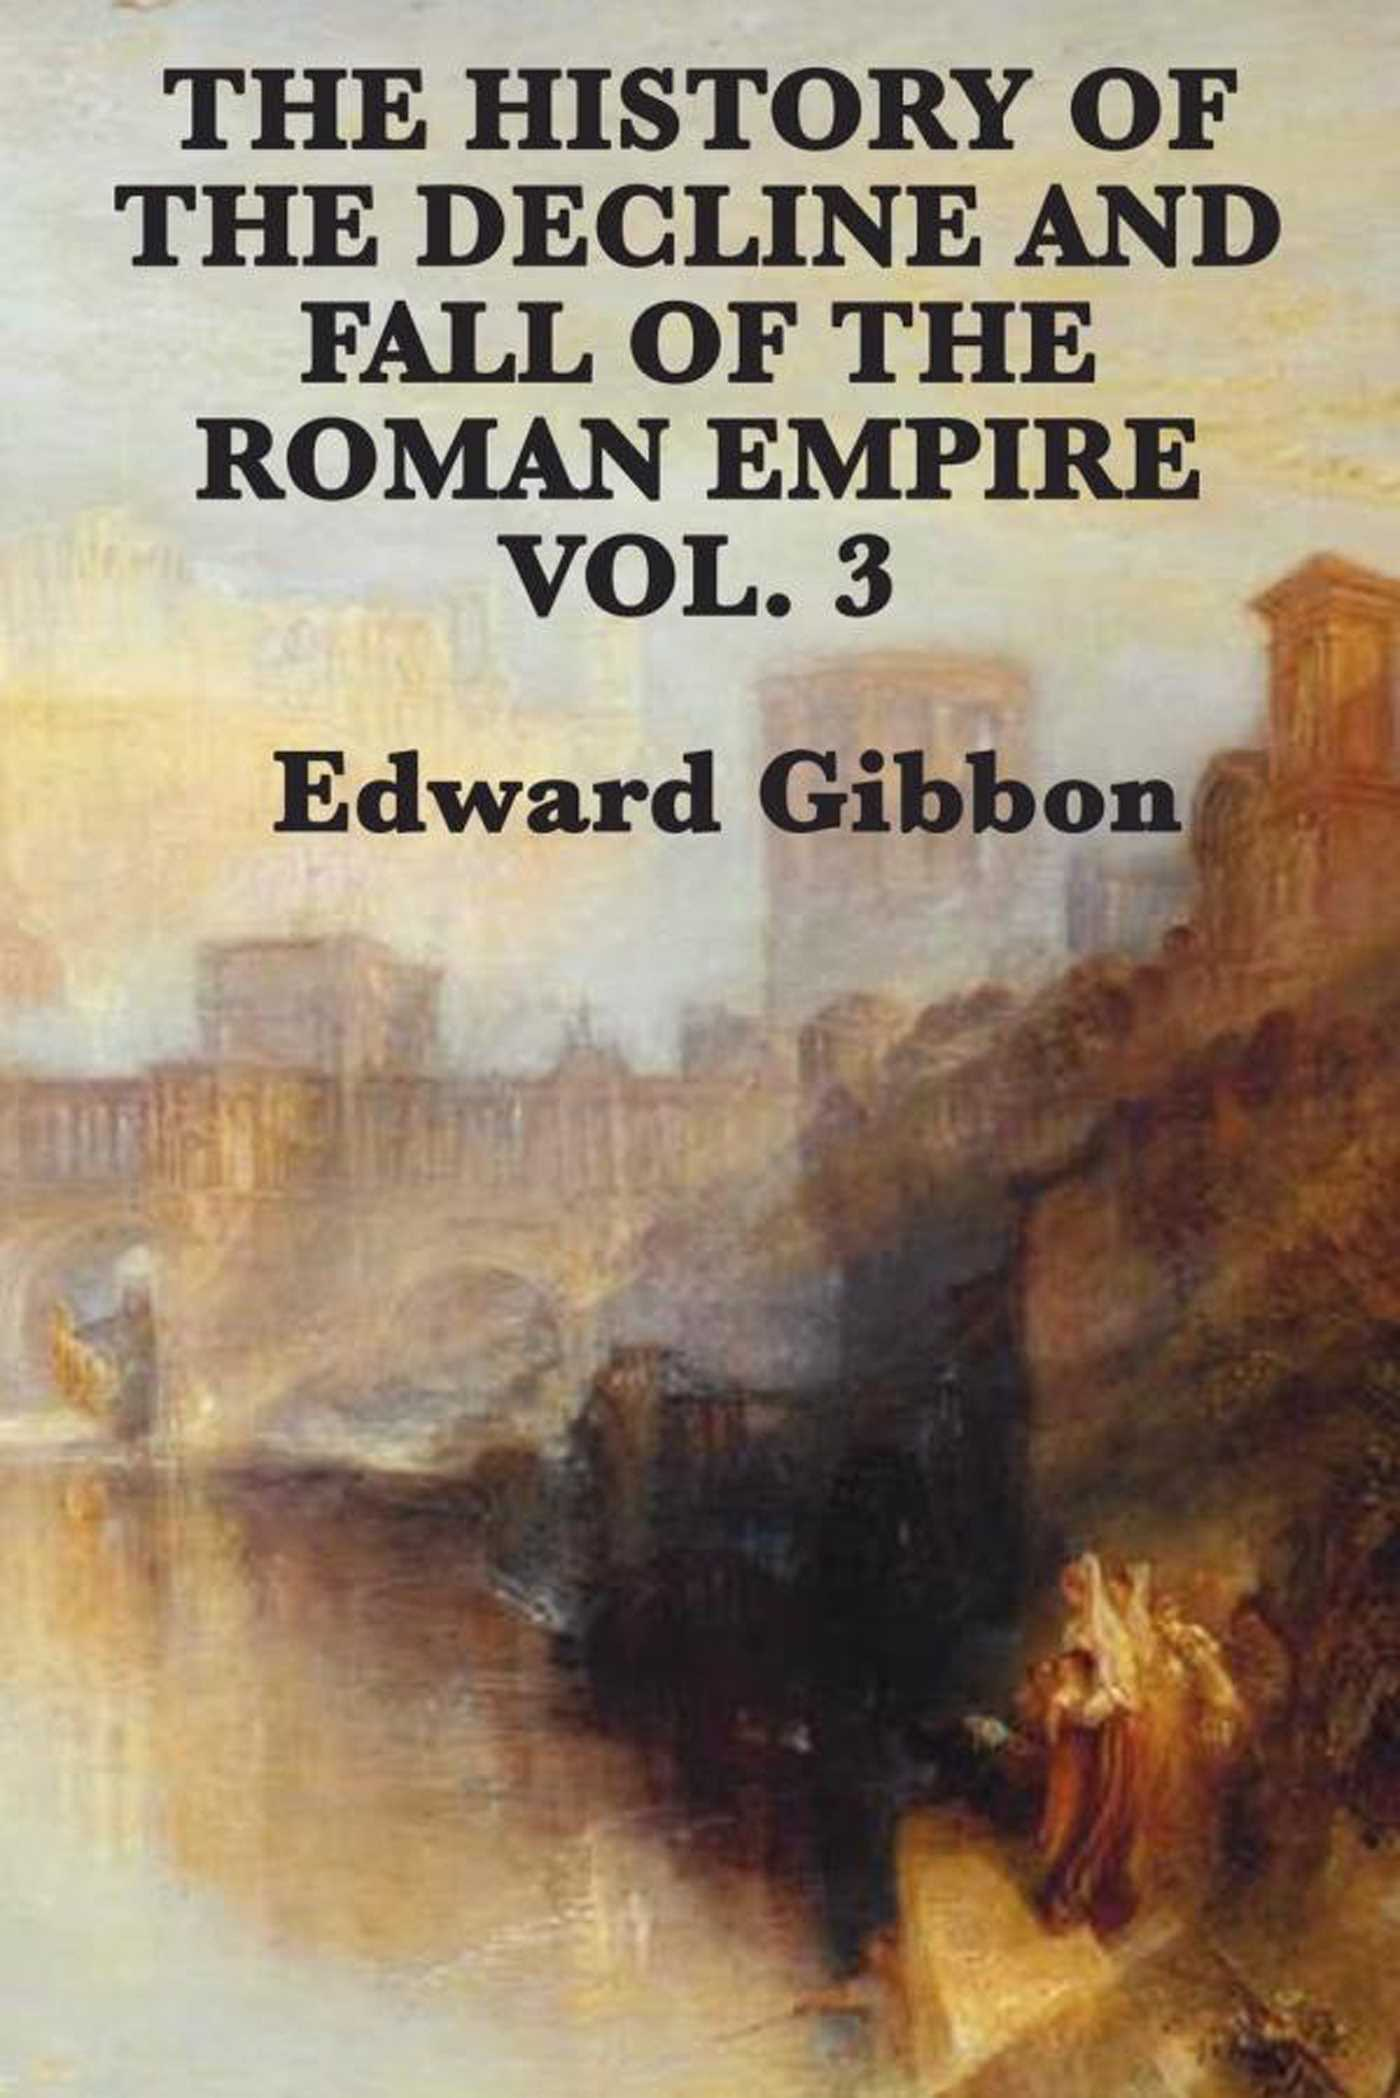 an introduction to the decline and fall of the roman empire Introduction: historical overview xxi chapter 1 late roman  the decline and  fall of rome marked the transition between the clas- sical and medieval world.